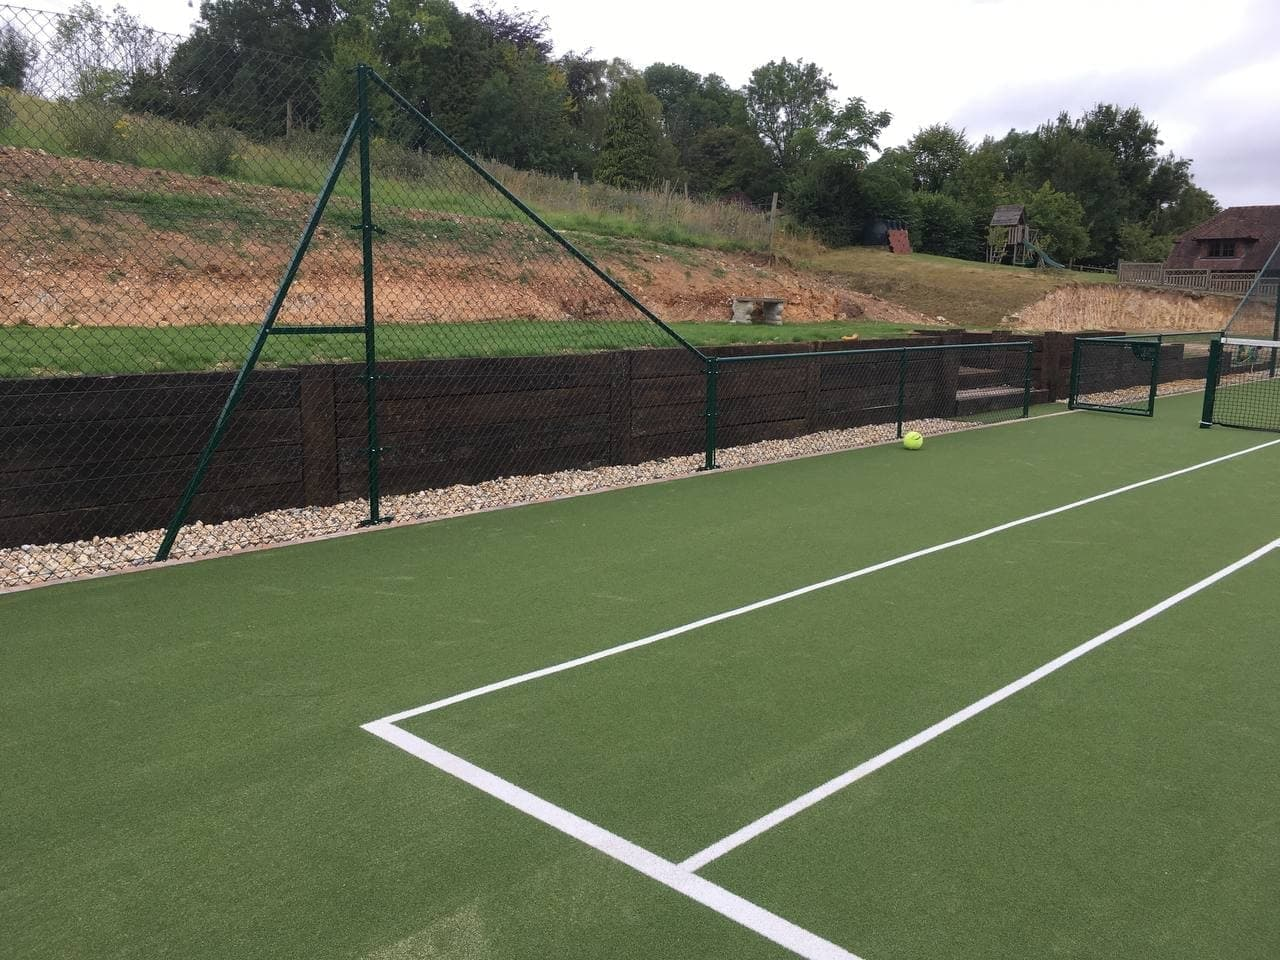 Newly construct tennis court in Sussex